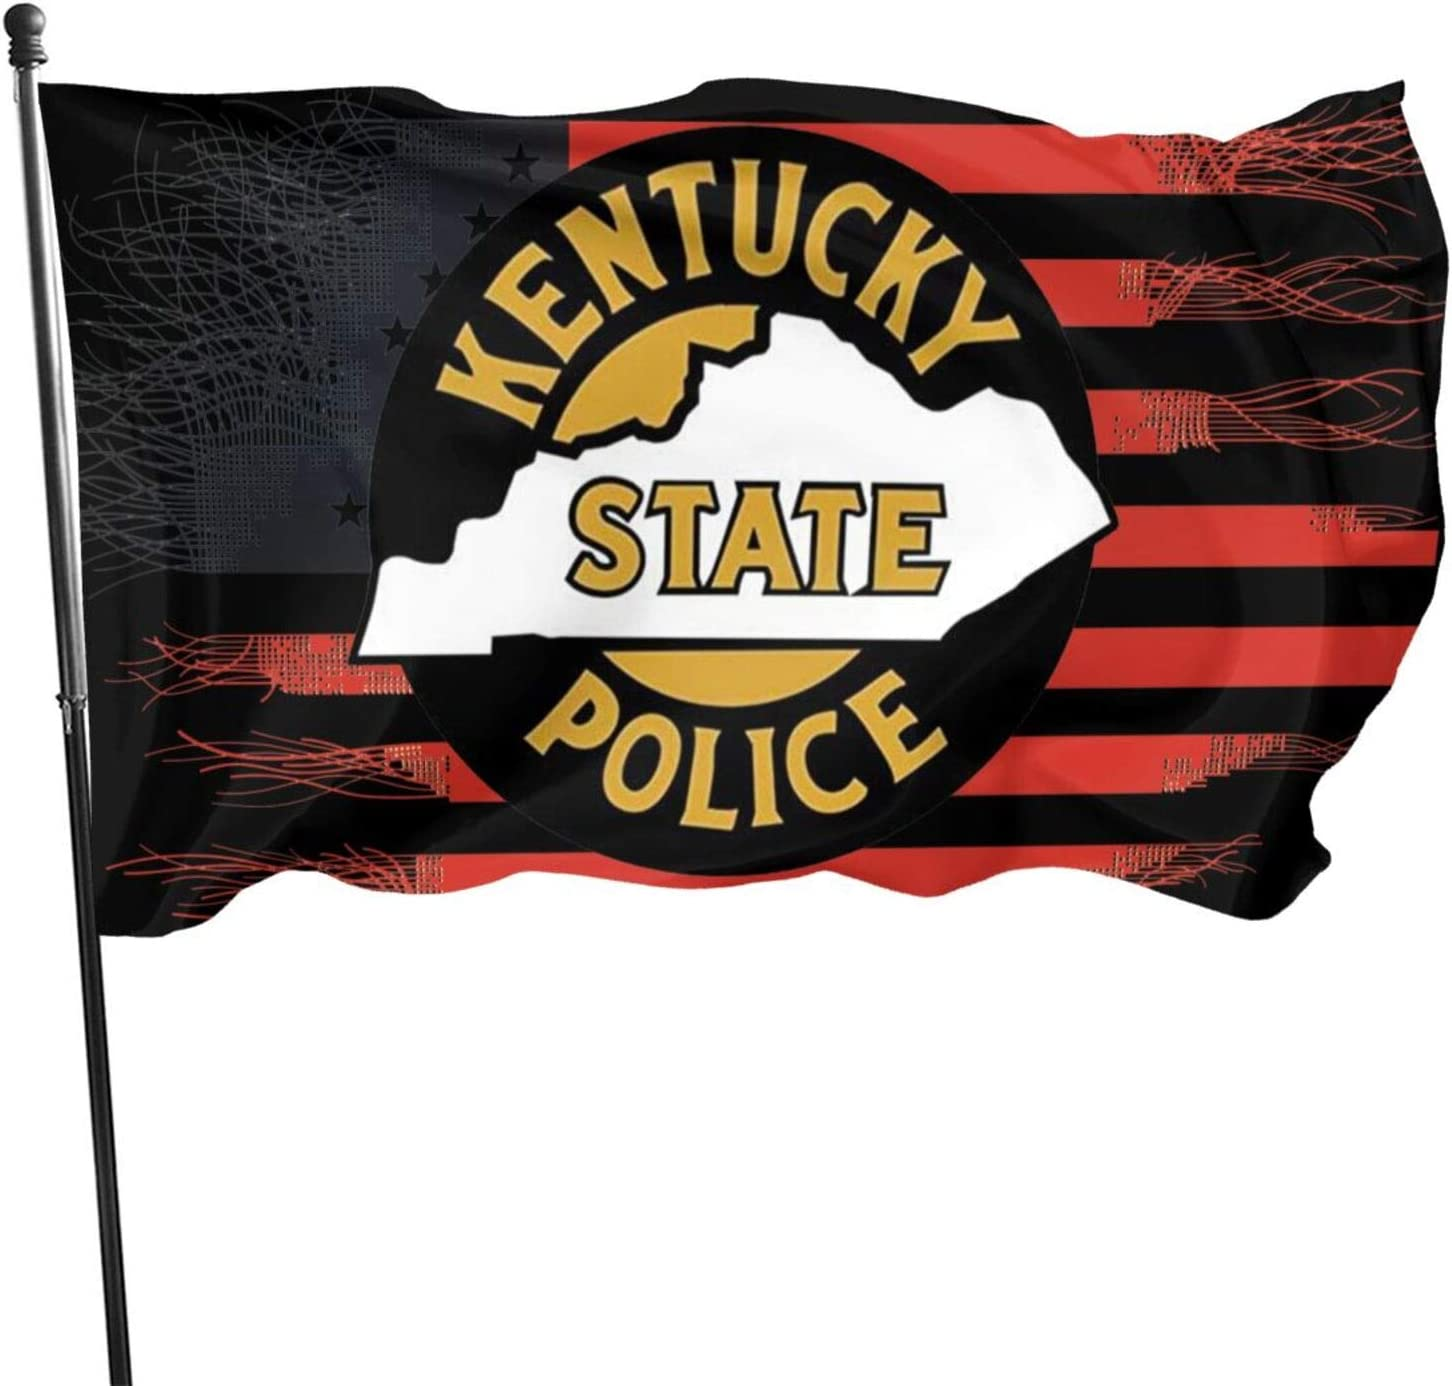 ROLFUSHA Kentucky State Police Flag 3x5 Feet Tough Durable Colorfast Flag Indoor/Outdoor Polyester Flag Garden Office Flag Decorate